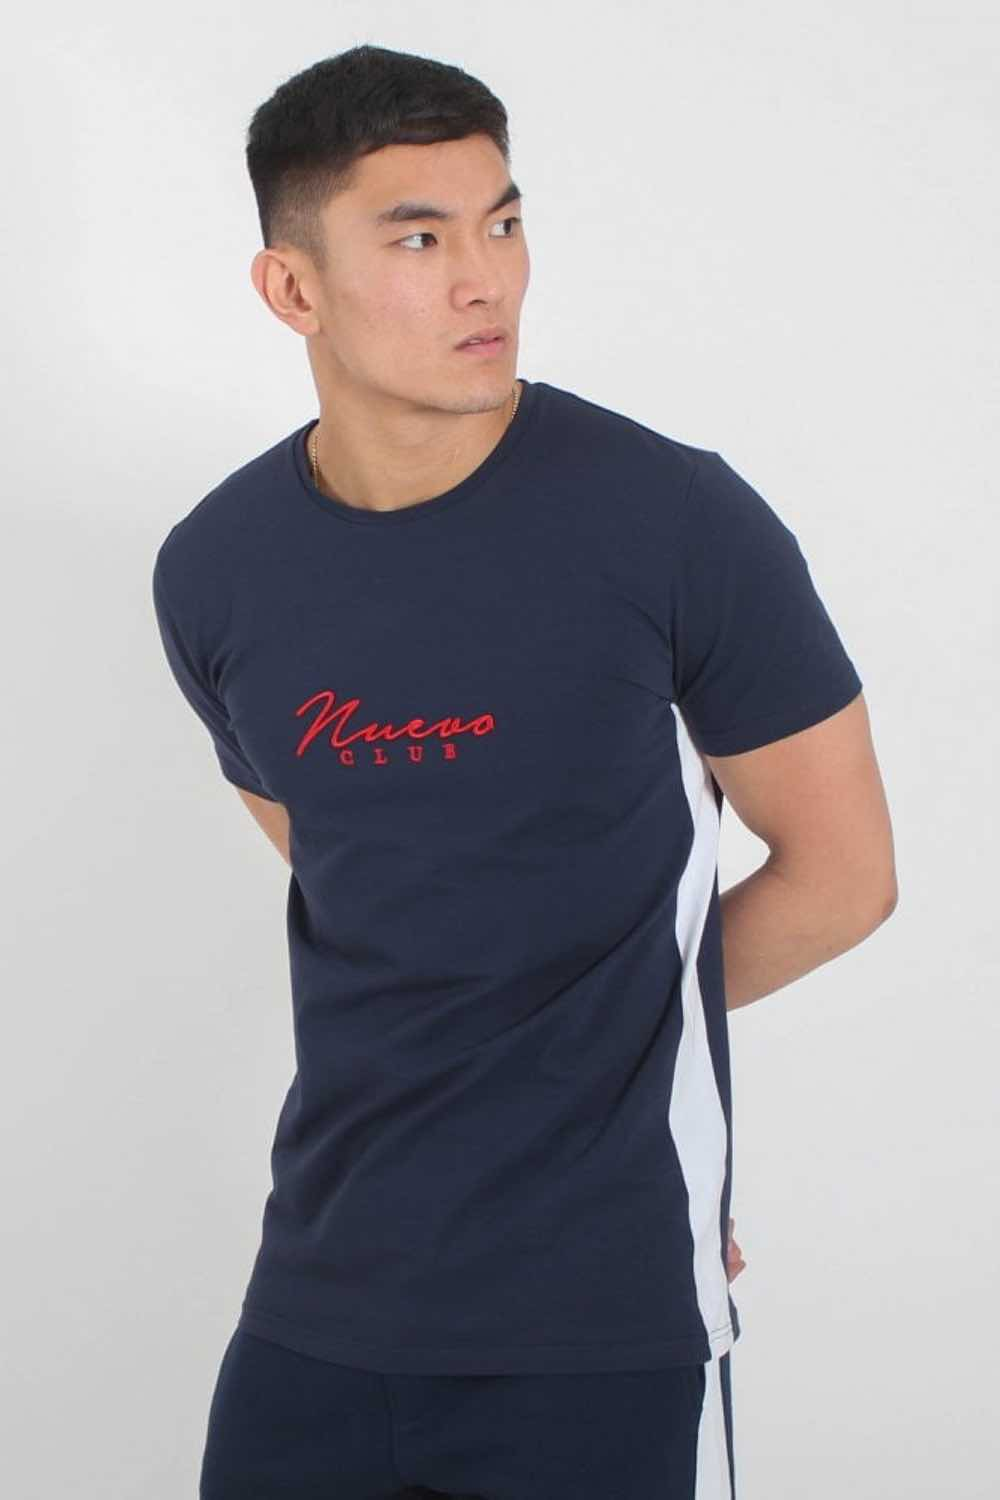 Nuevo Club Panel T-Shirt - Navy/White - 2